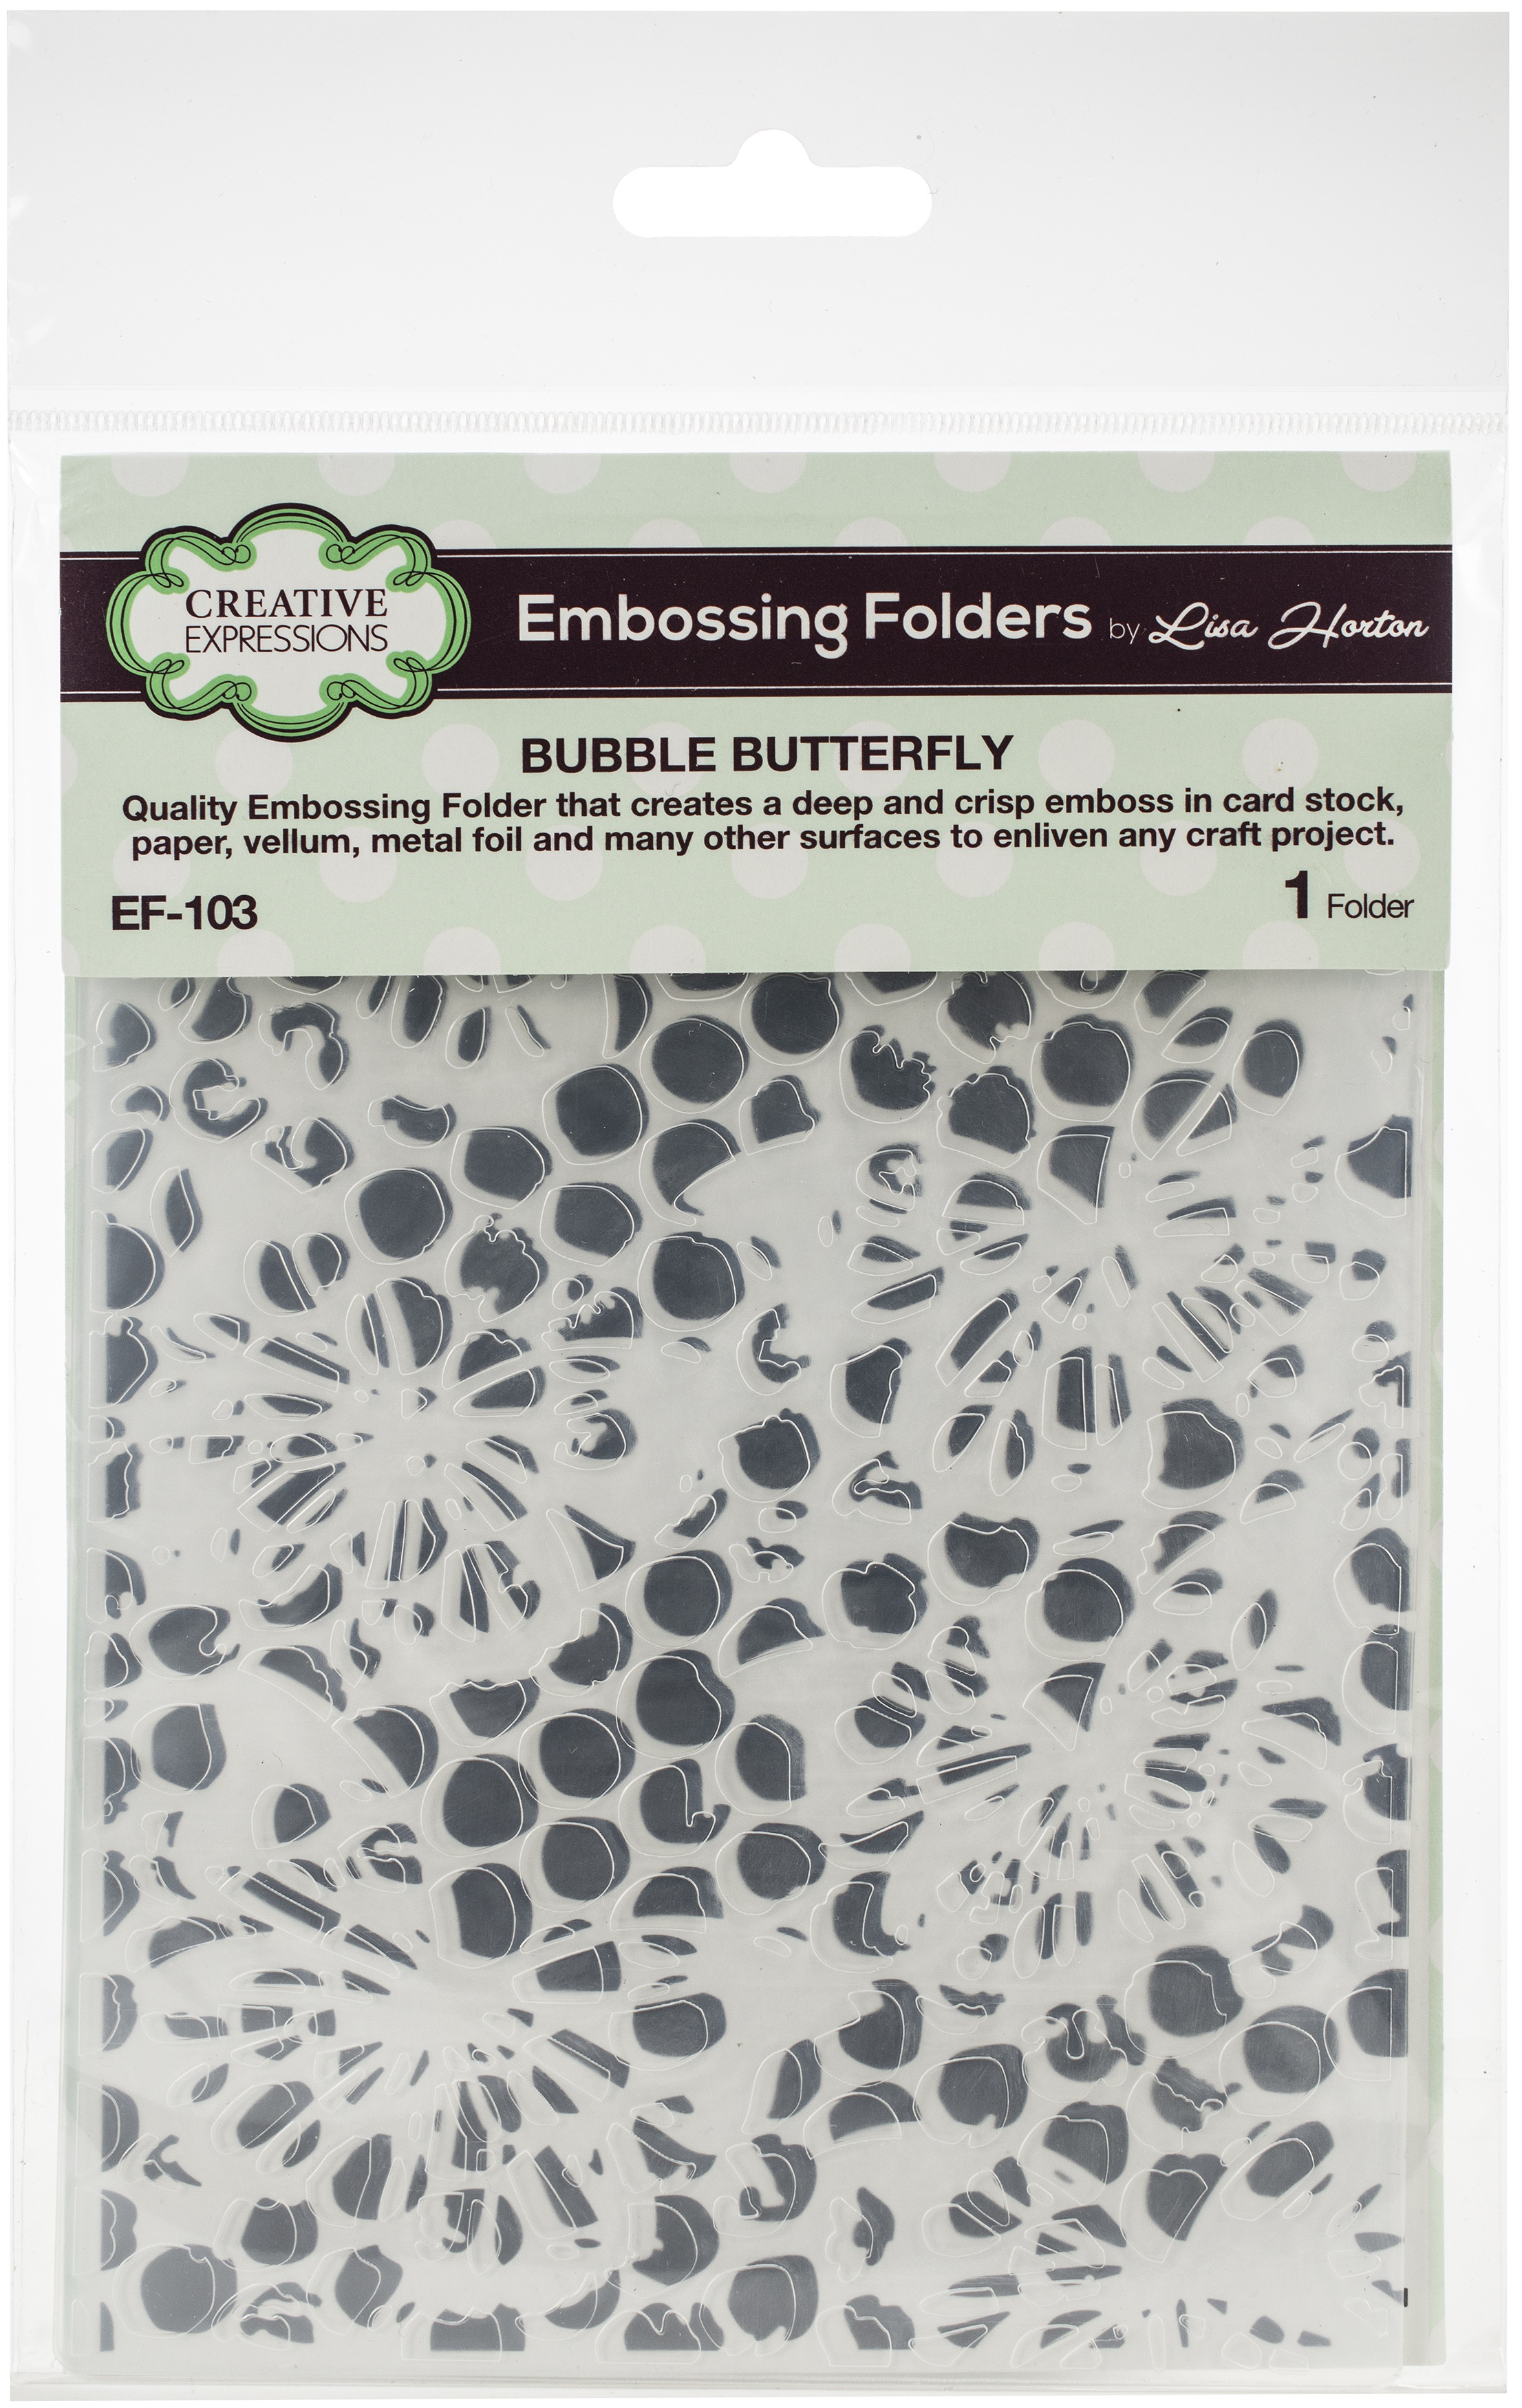 Creative Expressions Embossing Folder 5X7-Bubble Butterfly